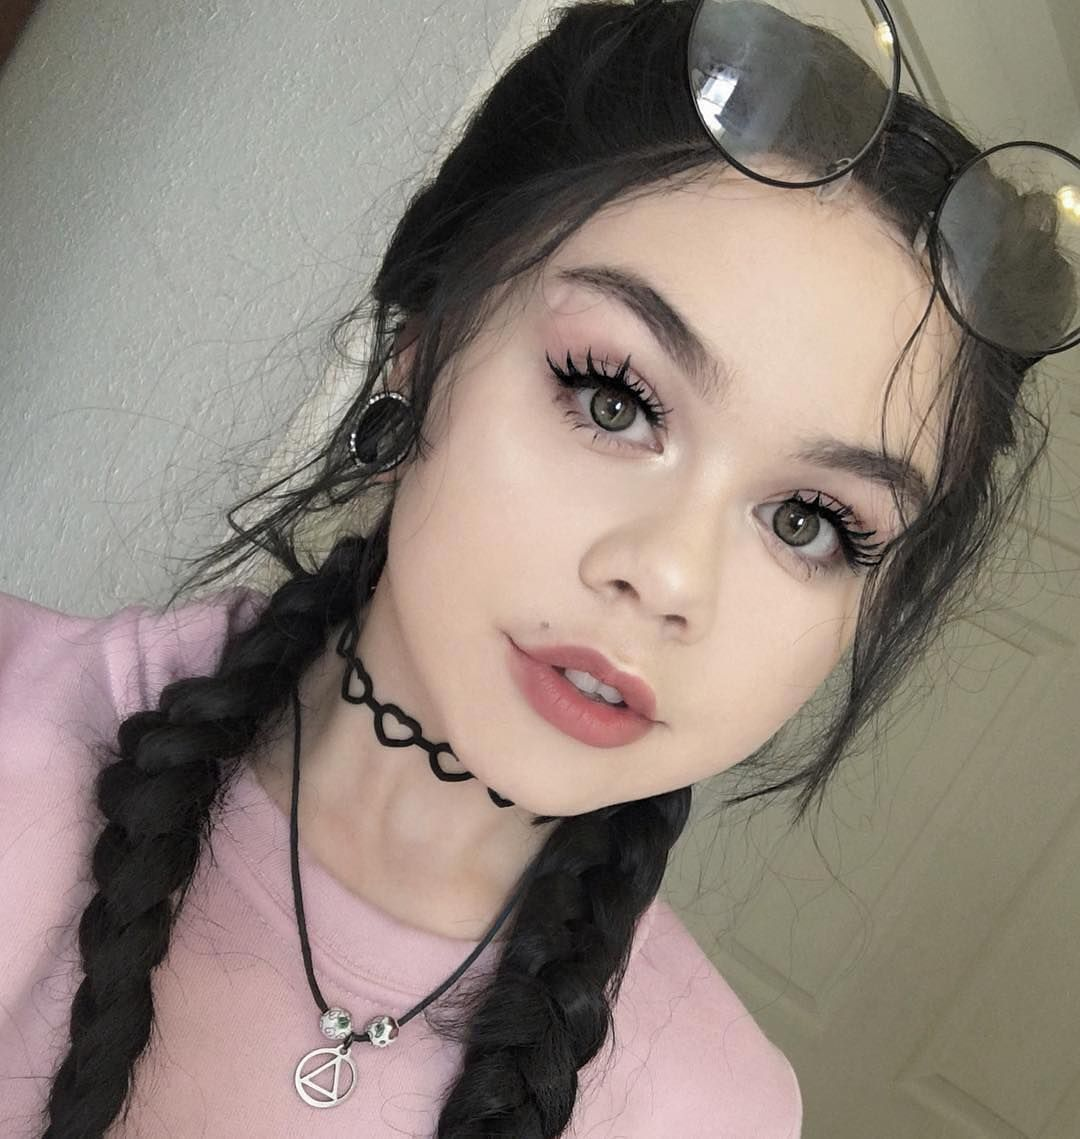 Check out the black synthetic braided wig rocked by sweet babe check out the black synthetic braided wig rocked by sweet babe sugoimeg do you want fandeluxe Gallery